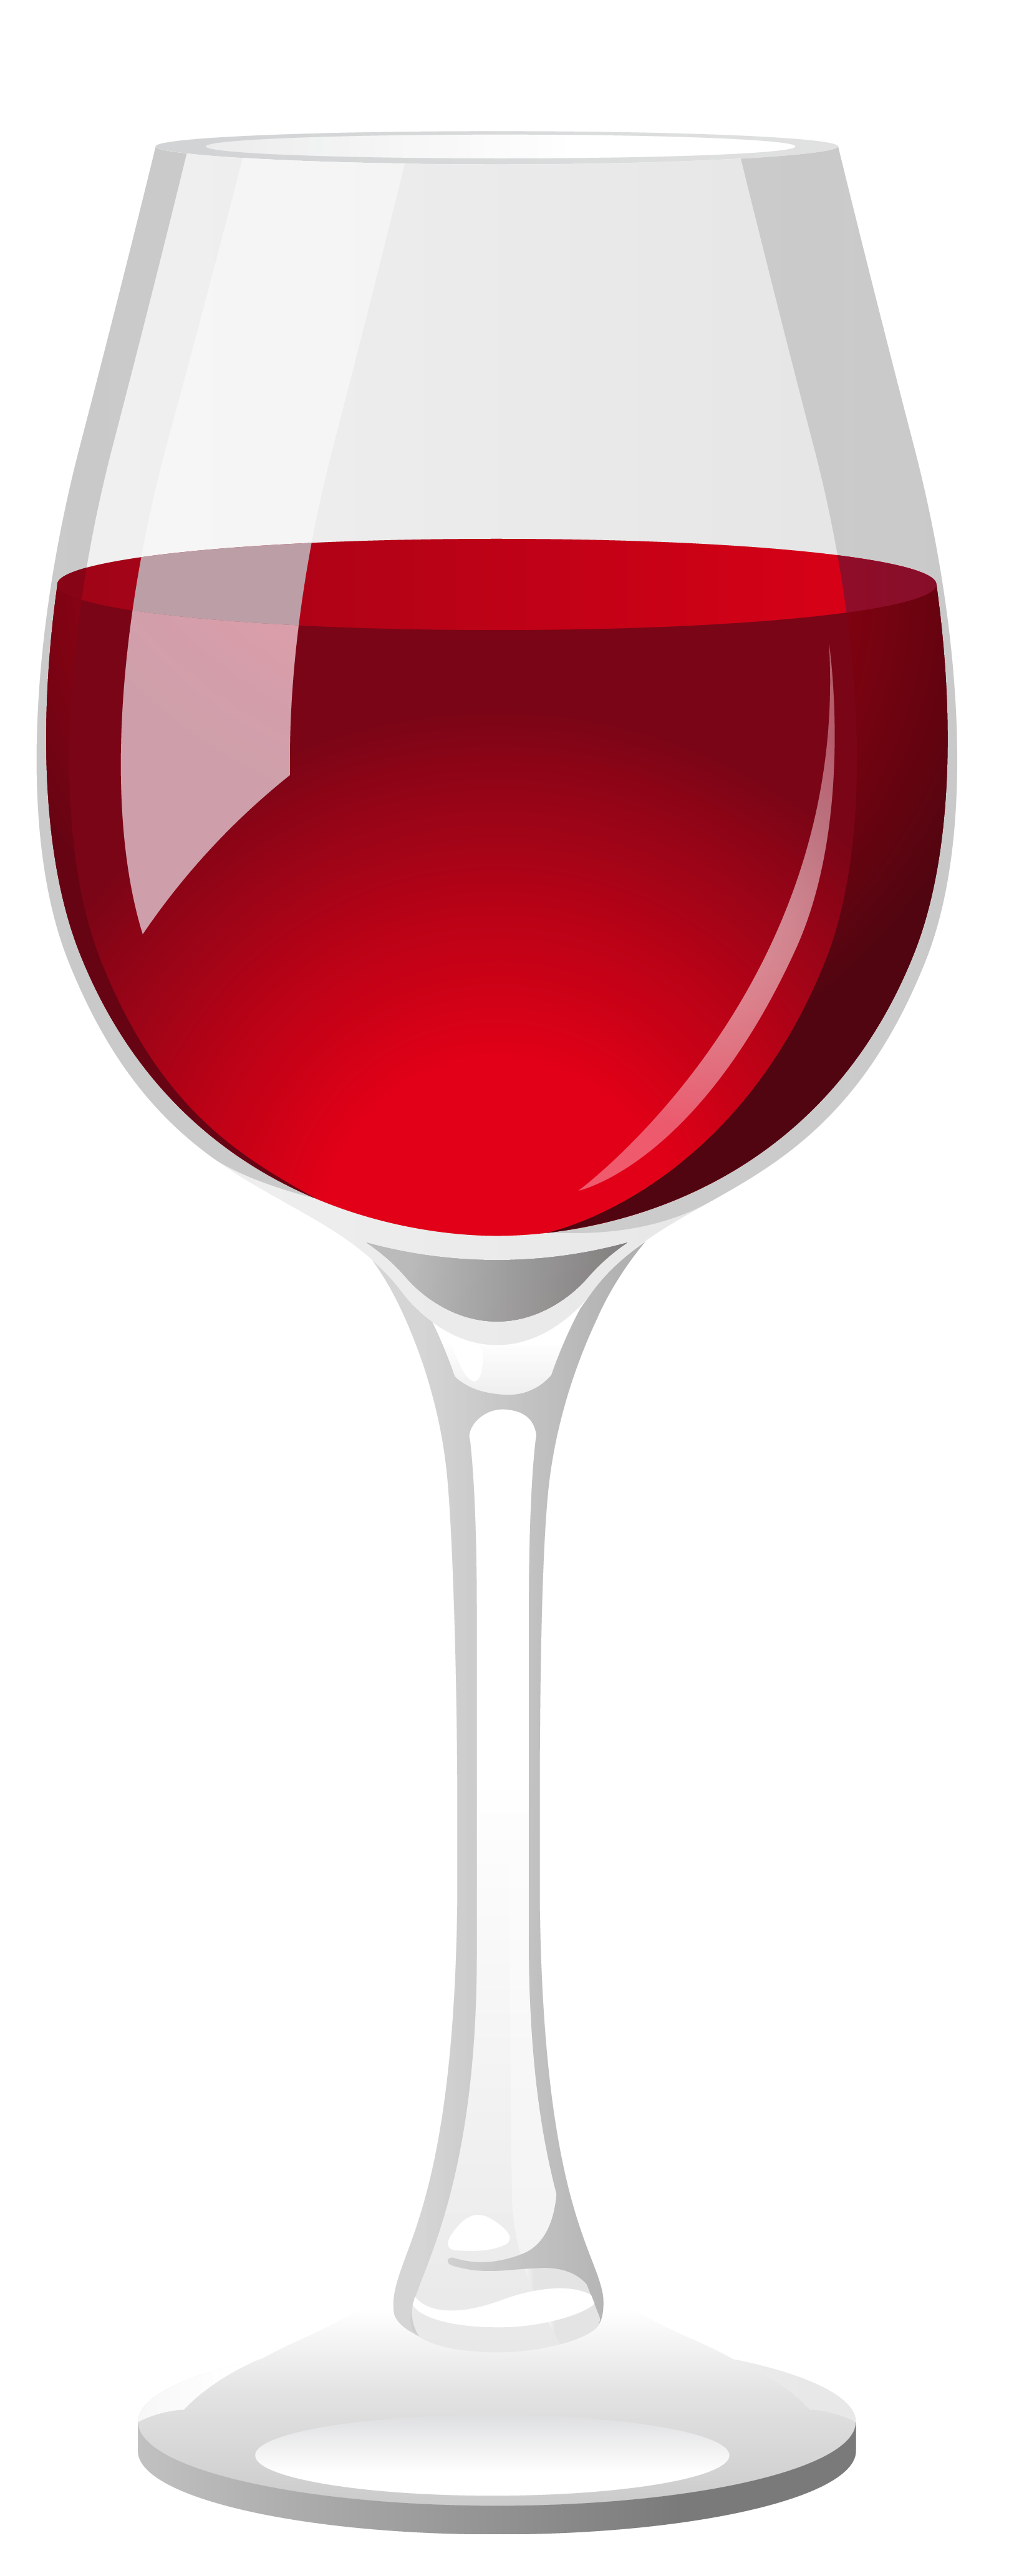 glass of wine png